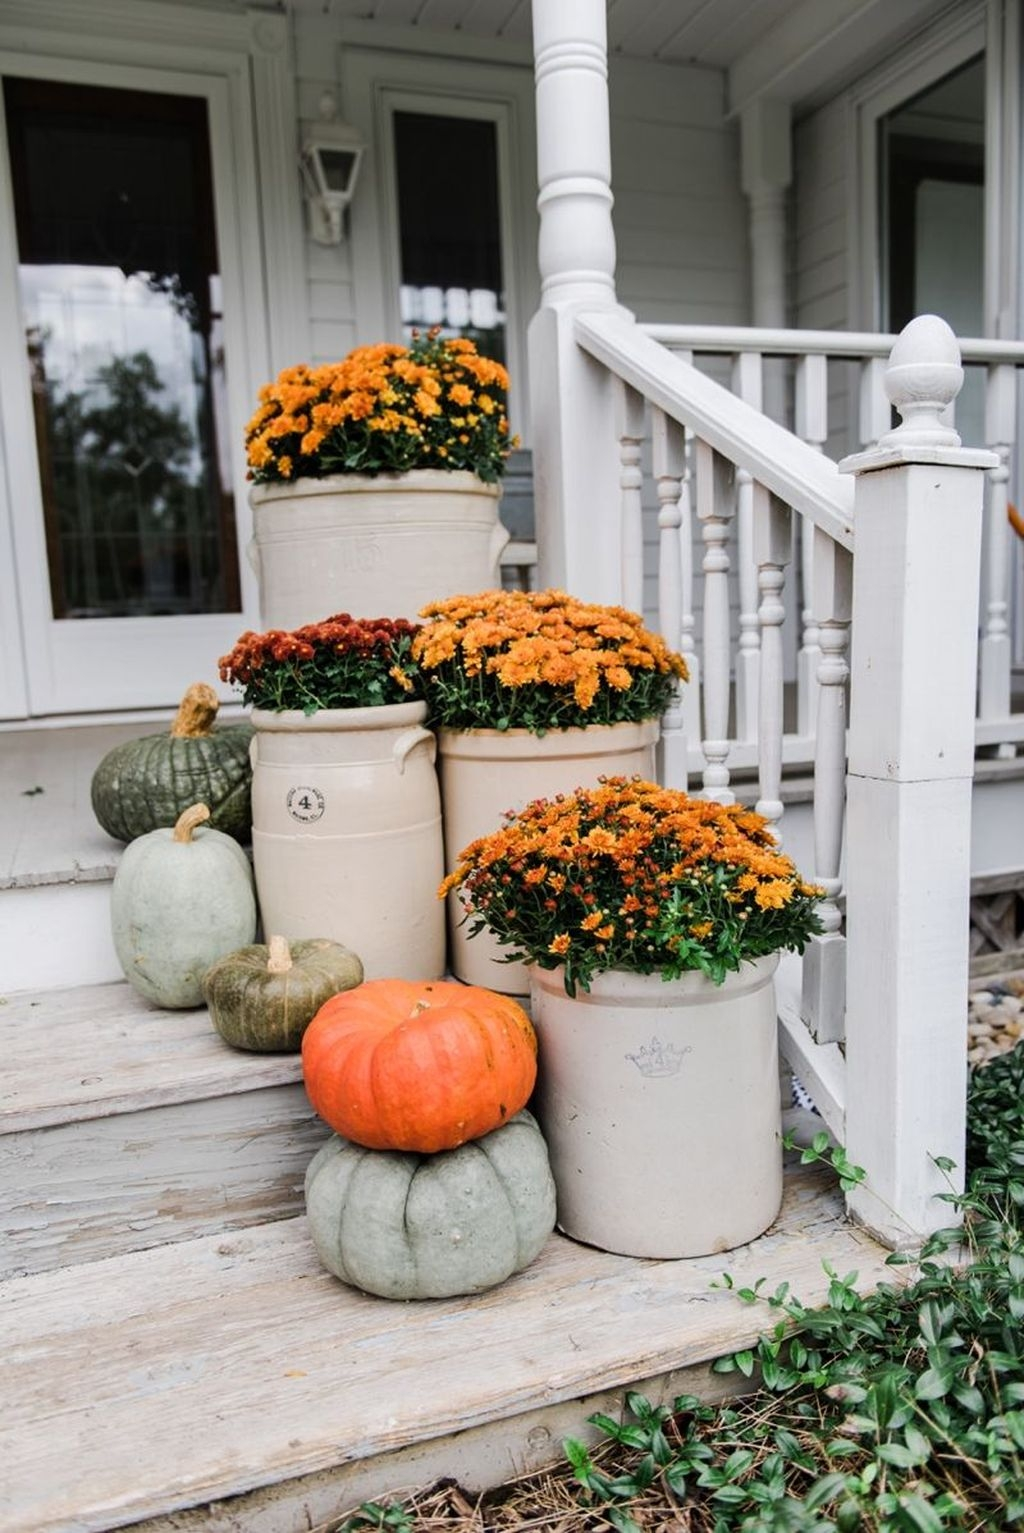 Modern Rustic Farmhouse Porch Decor Ideas 43